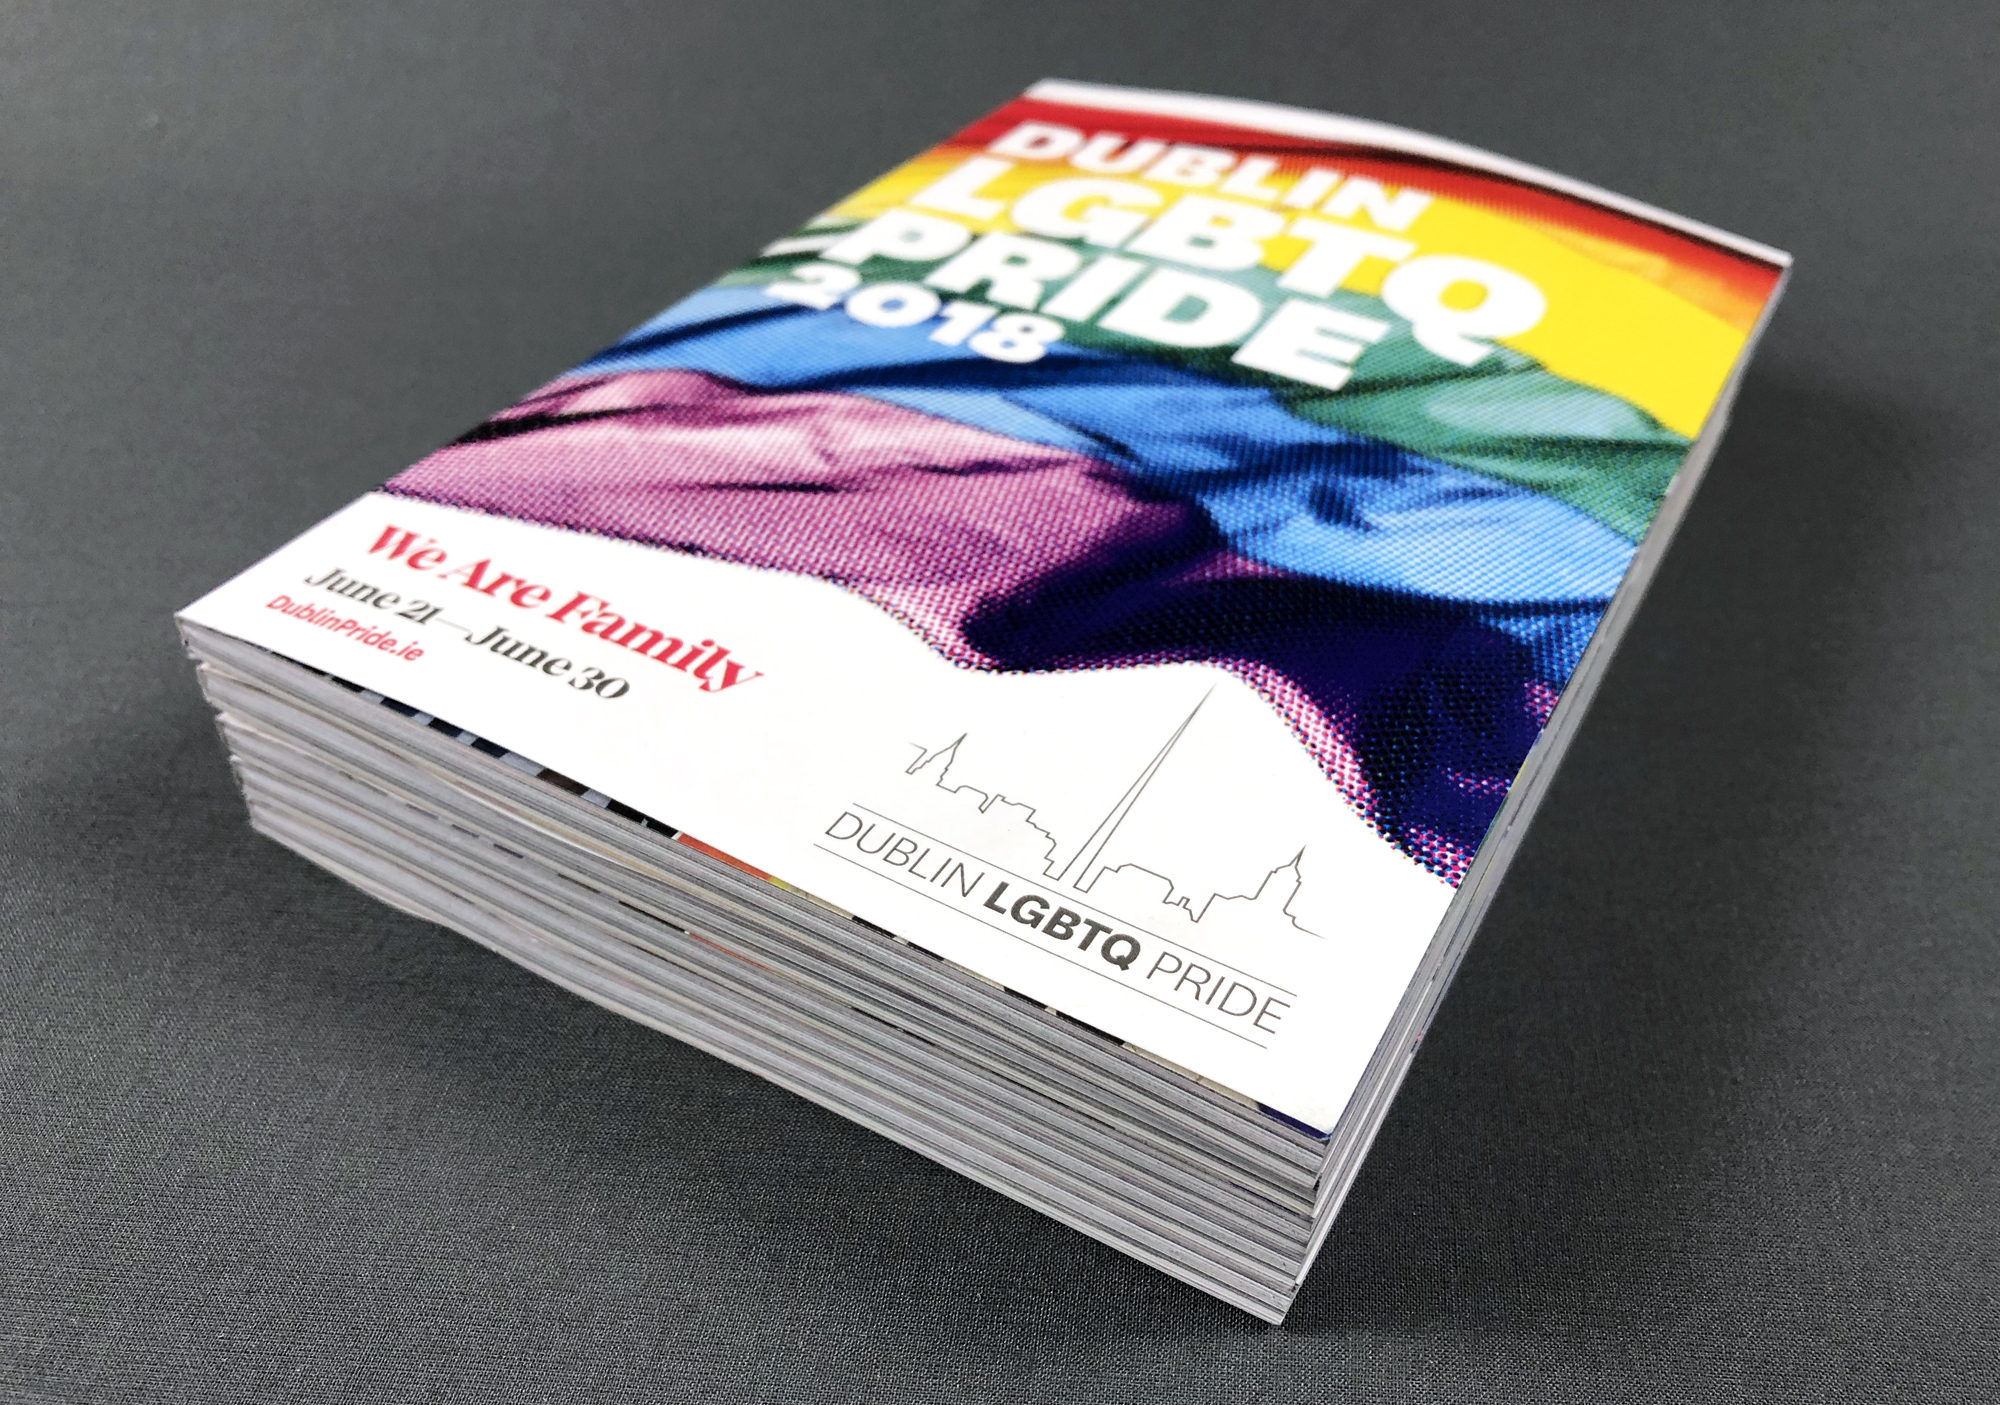 Cover image: Dublin Pride Guide: We Are Family